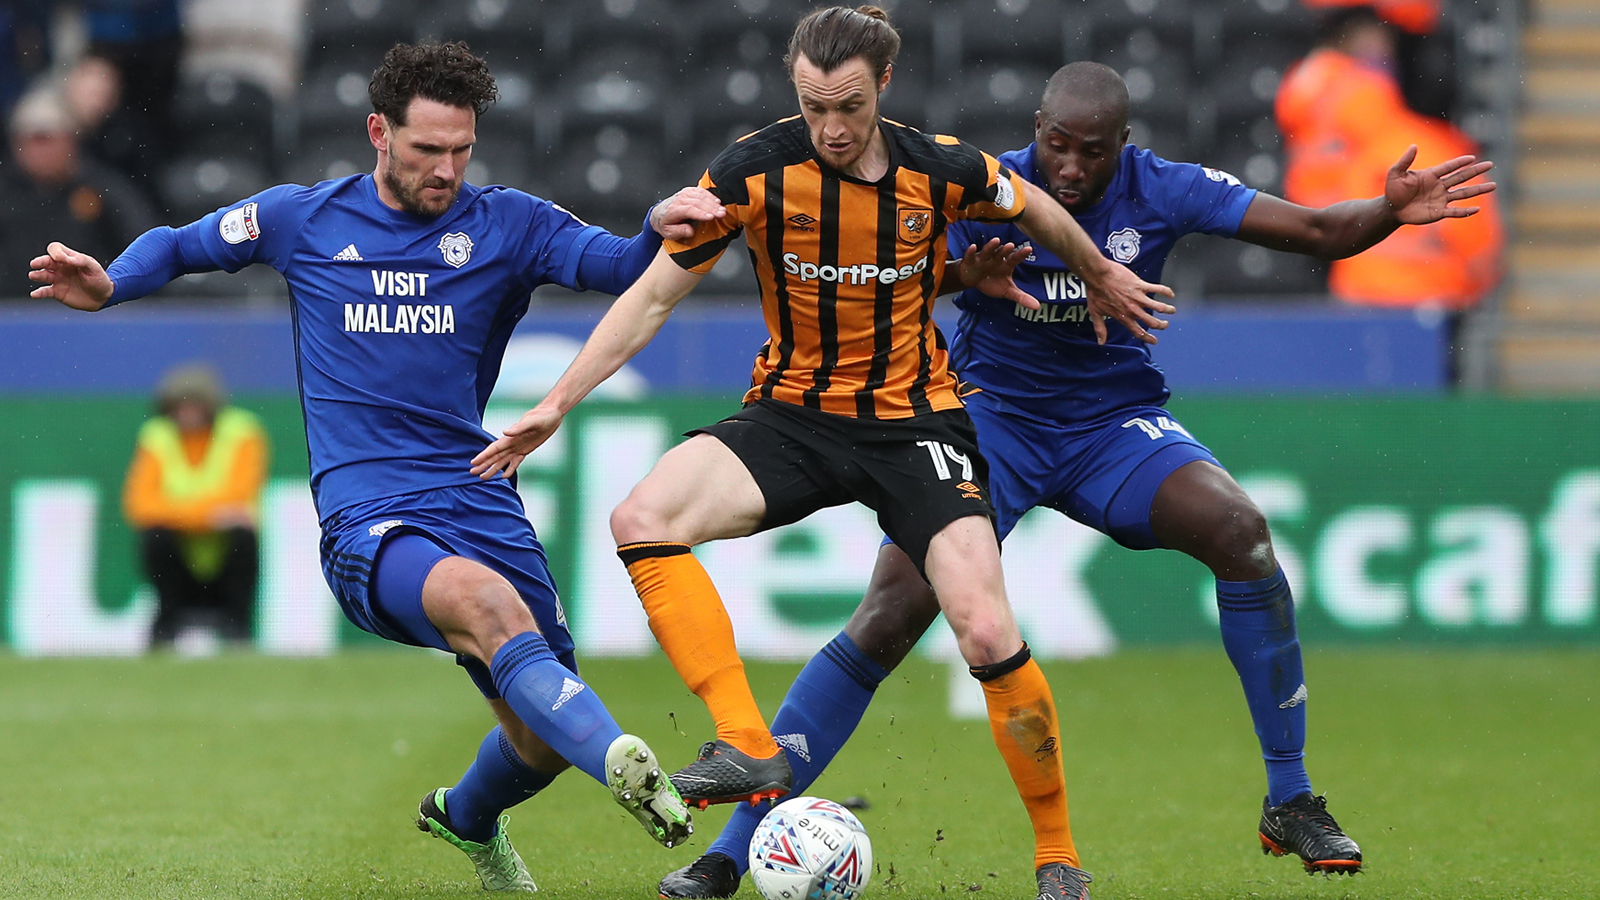 hull city vs cardiff betting previews